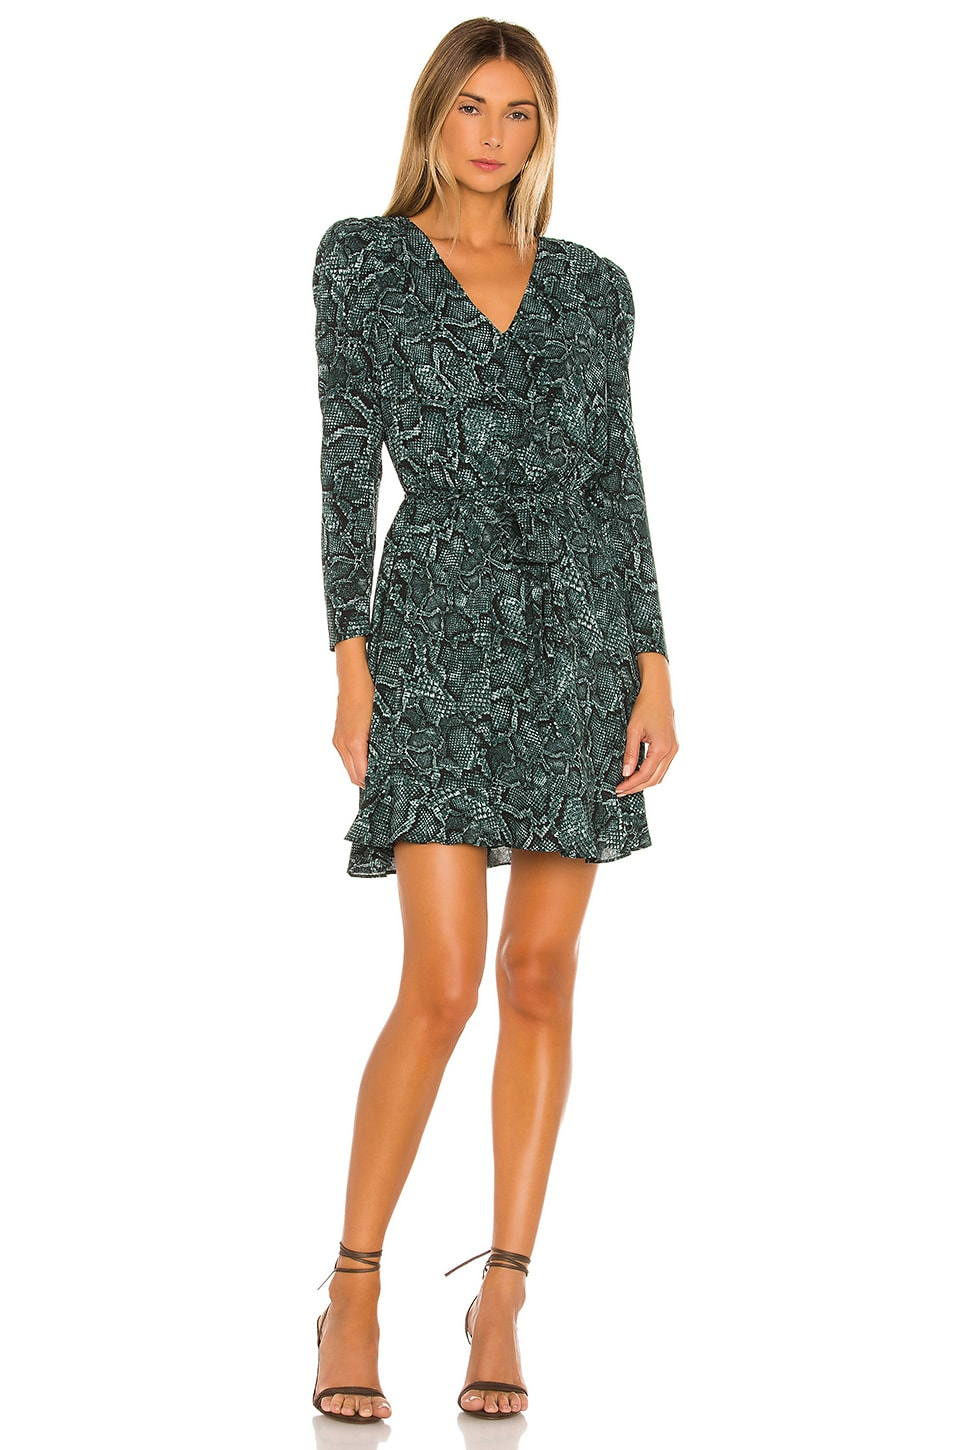 Tie Waist Snake Print Dress             1. STATE                                                                                                                                         Sale price:                                                                       CA$ 113.49                                                                  Previous price:                                                                       CA$ 174.29 8